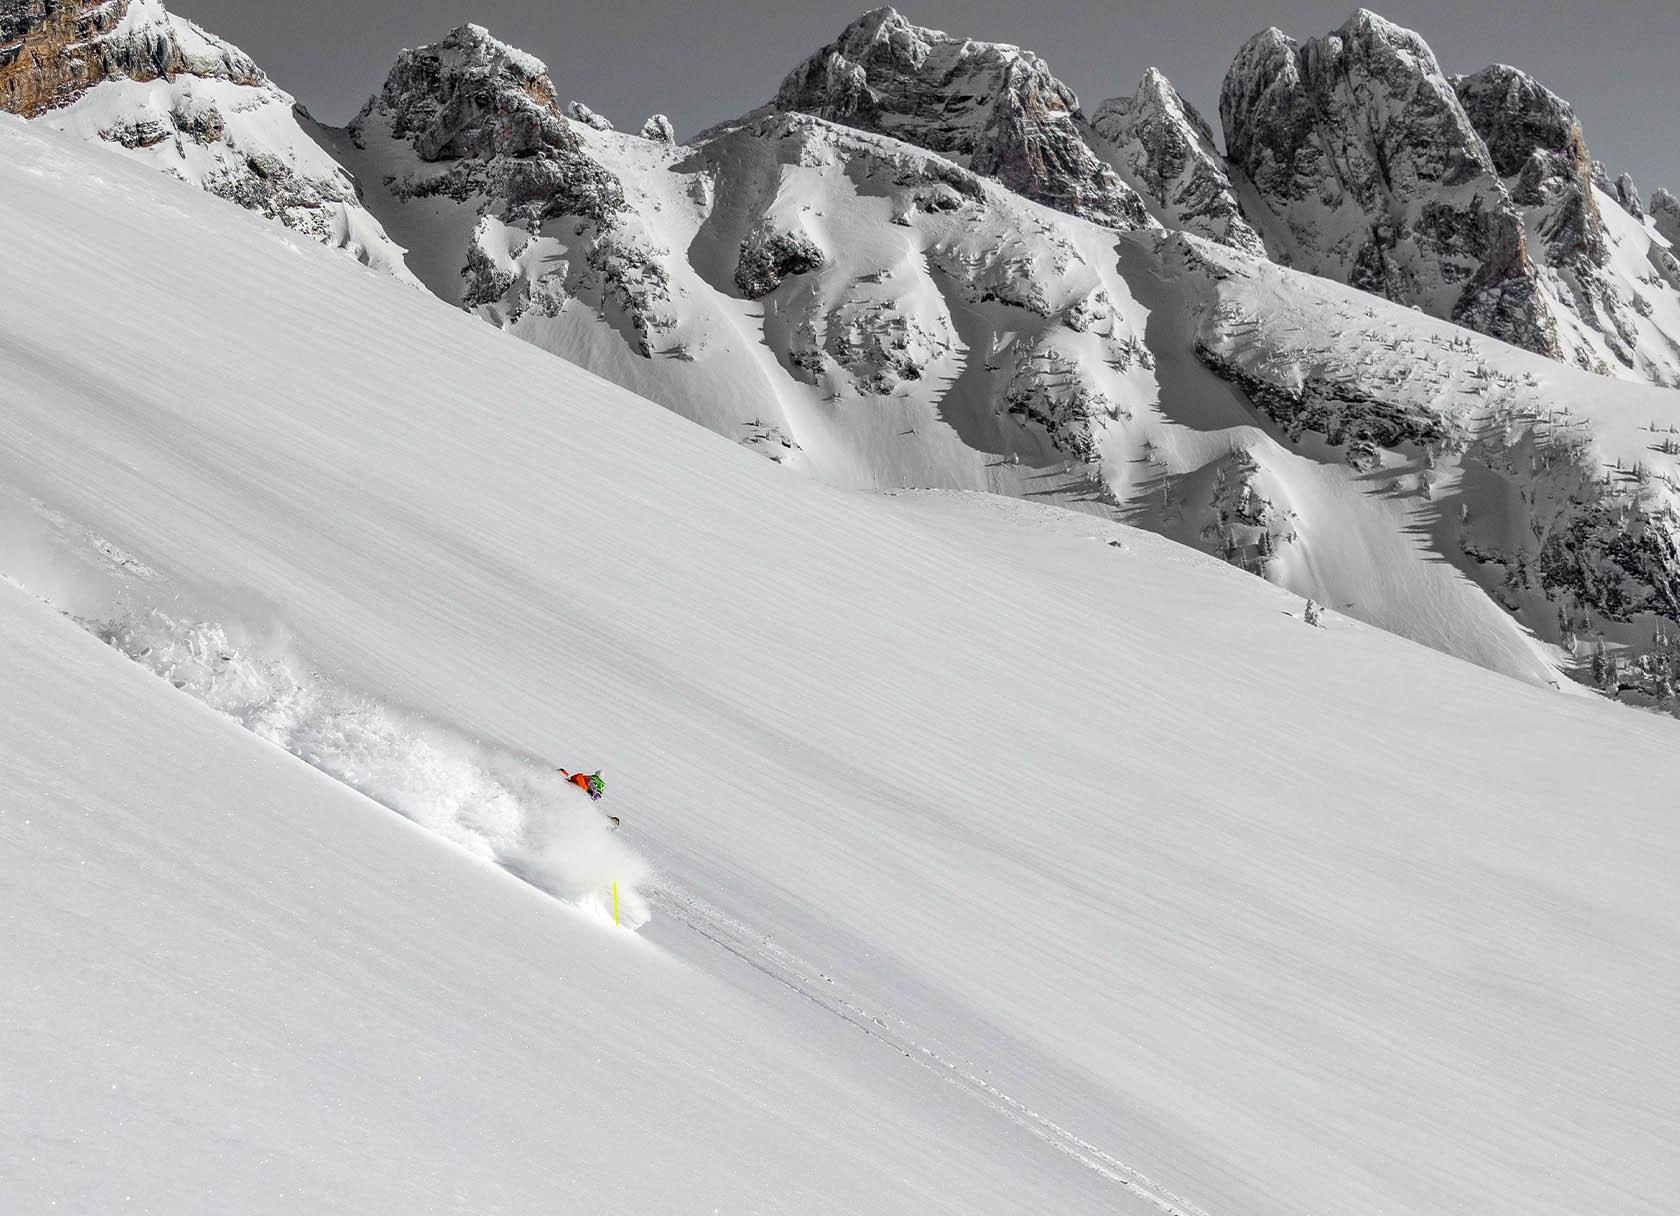 Heli Skiing in Canada - Helicopter Skiing